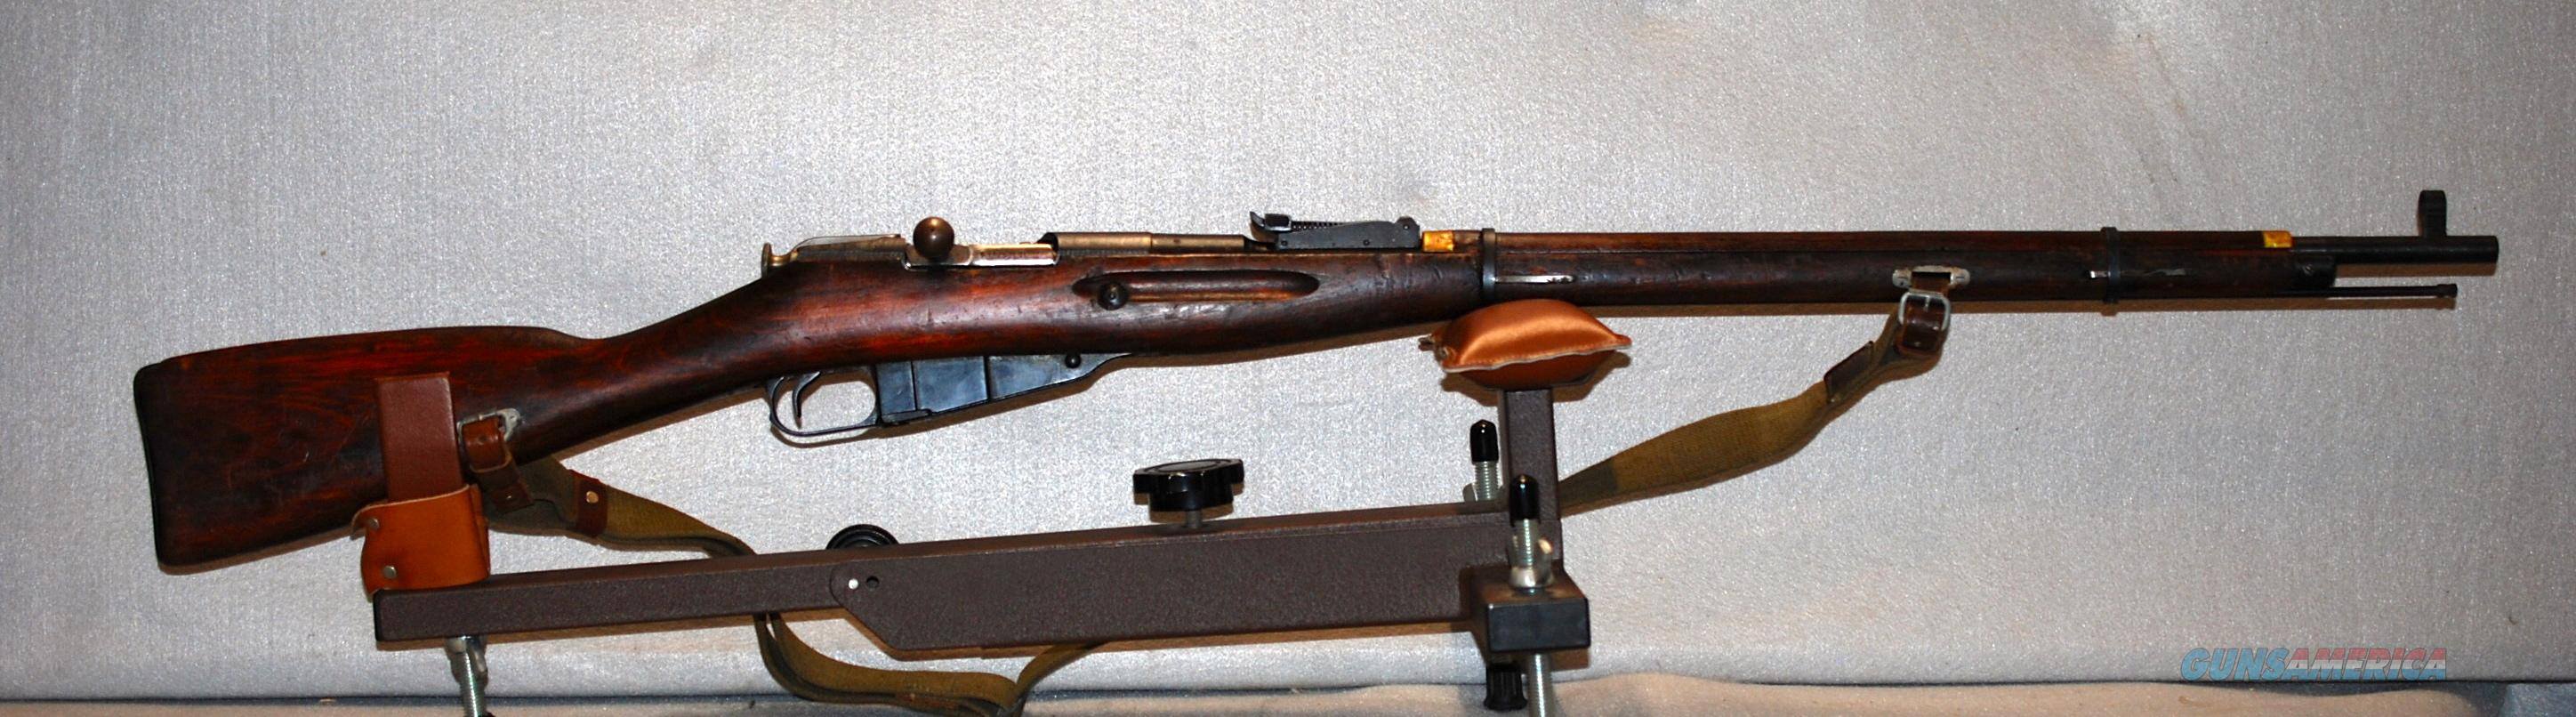 how to clean a mosin nagant after surplus mmo